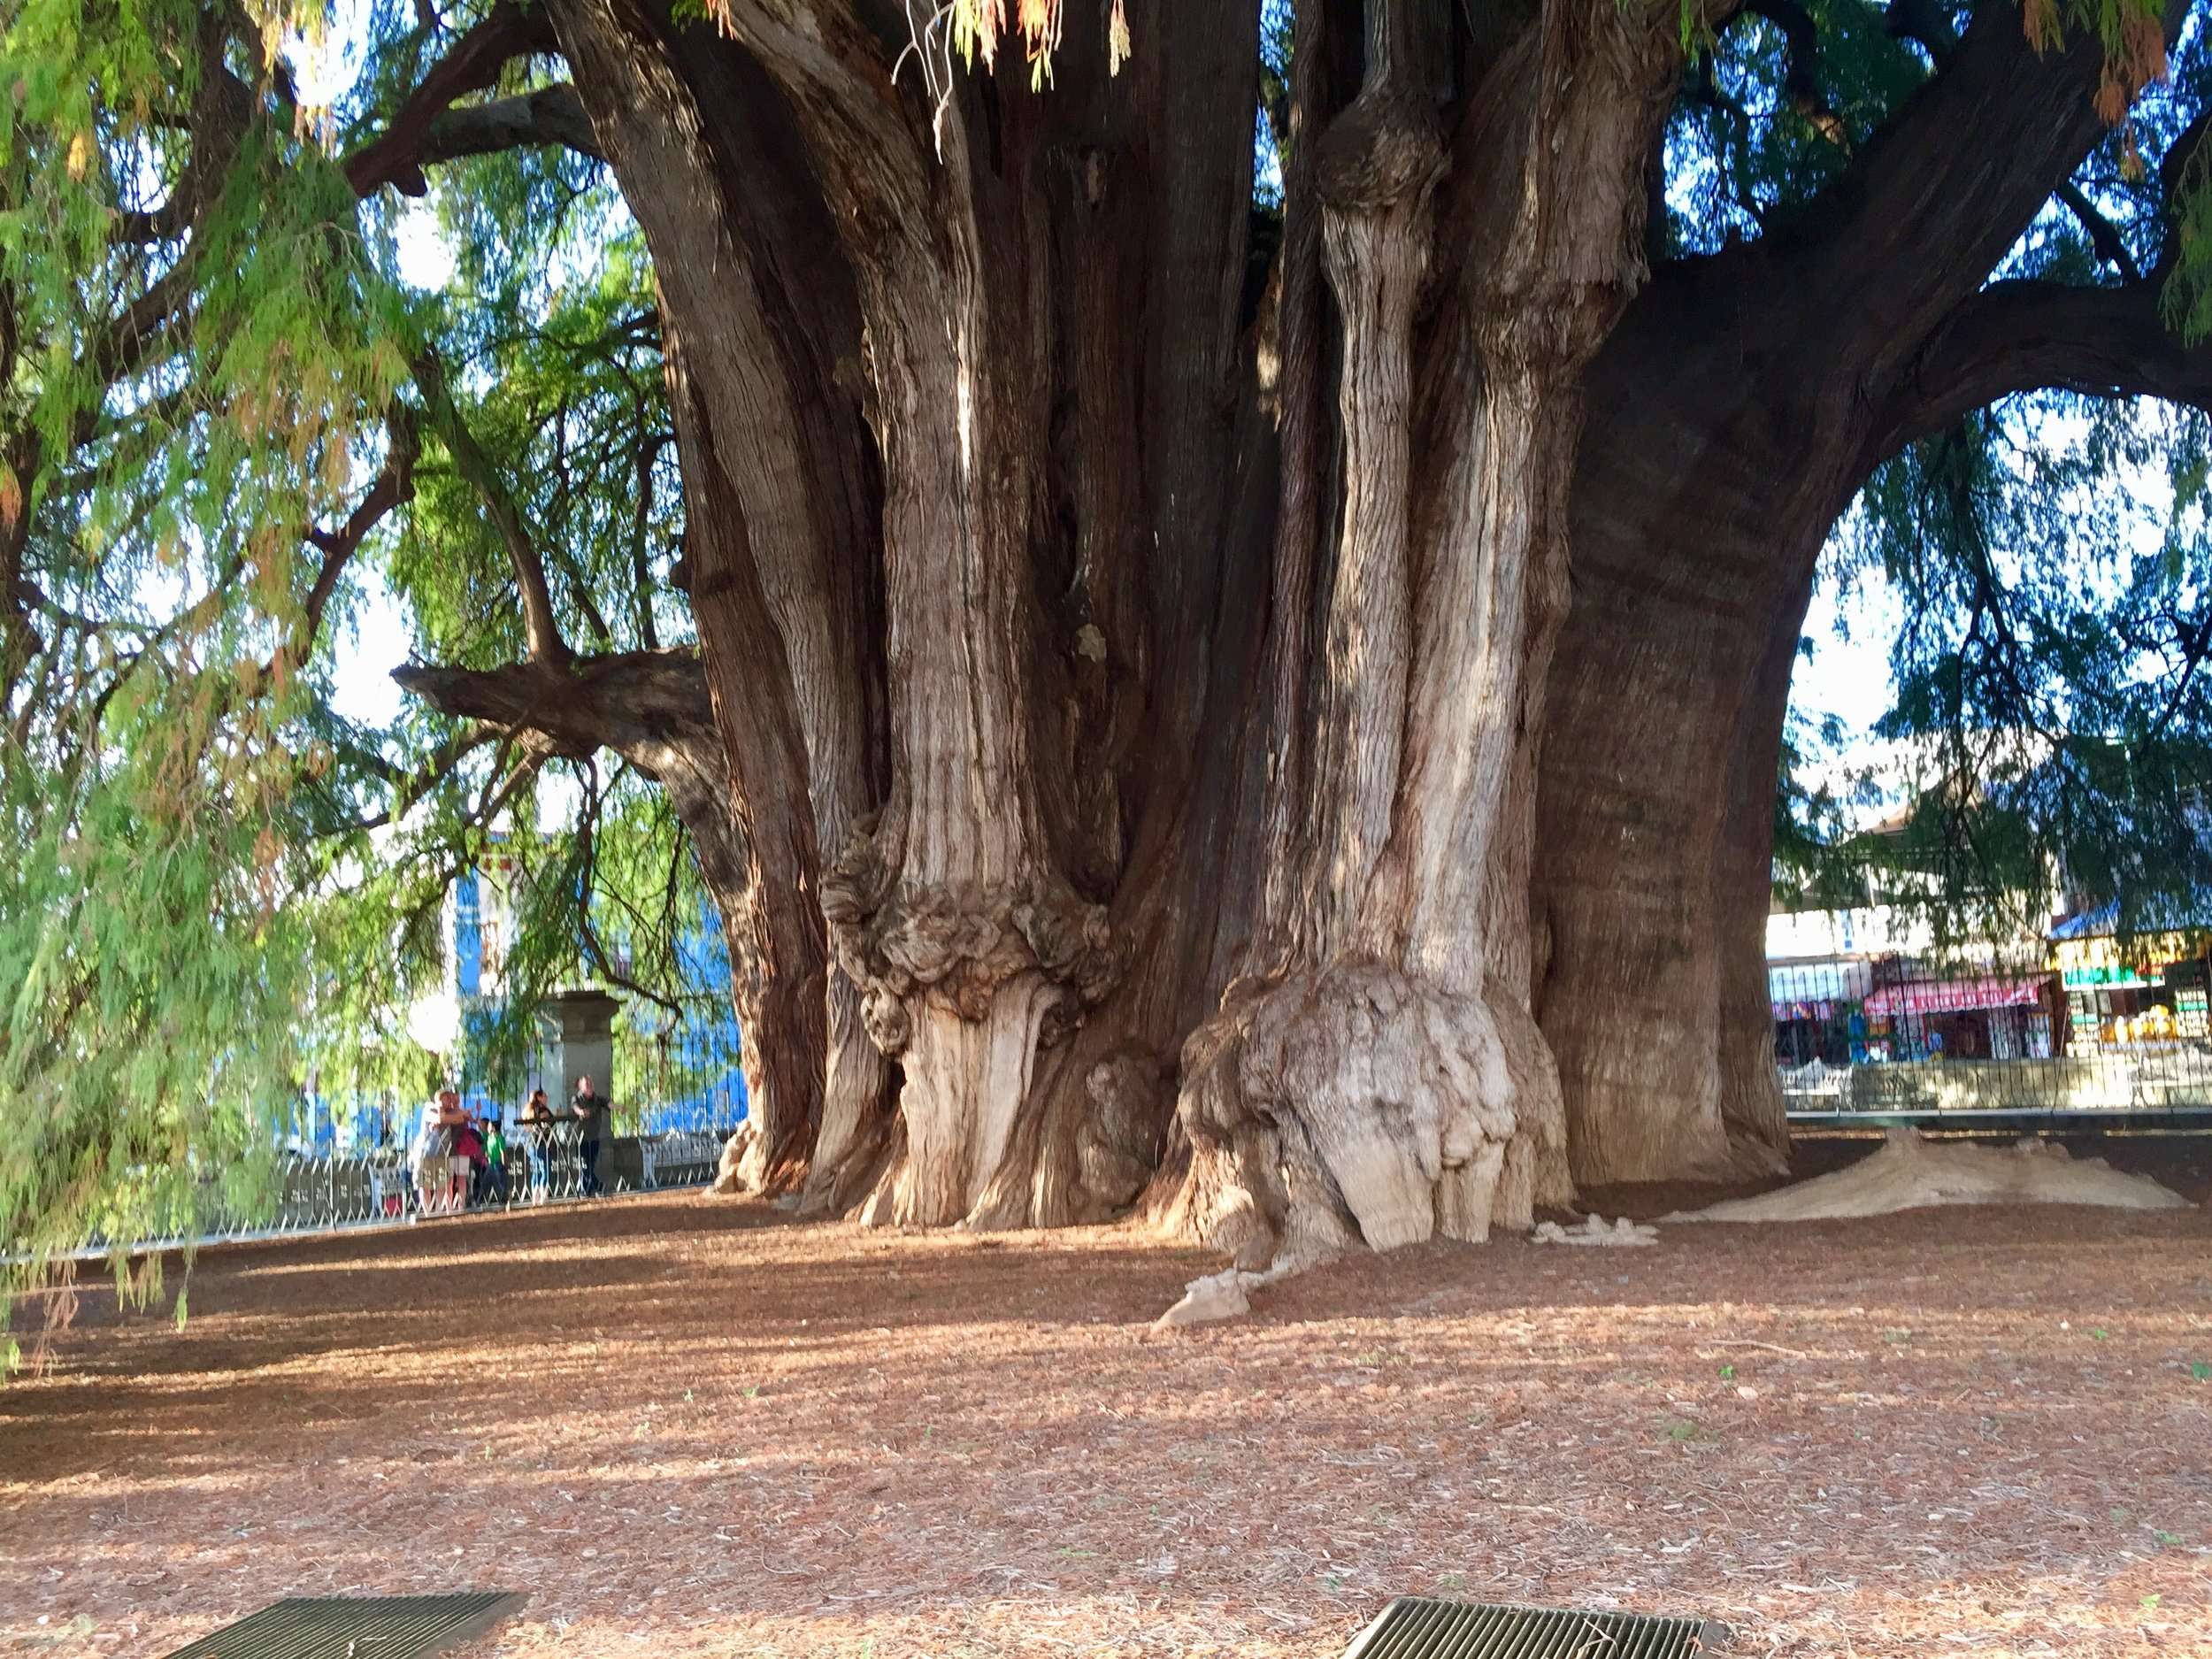 An ancient cypress in El Tule. At over 38' in diameter, it's the widest tree in the entire world.